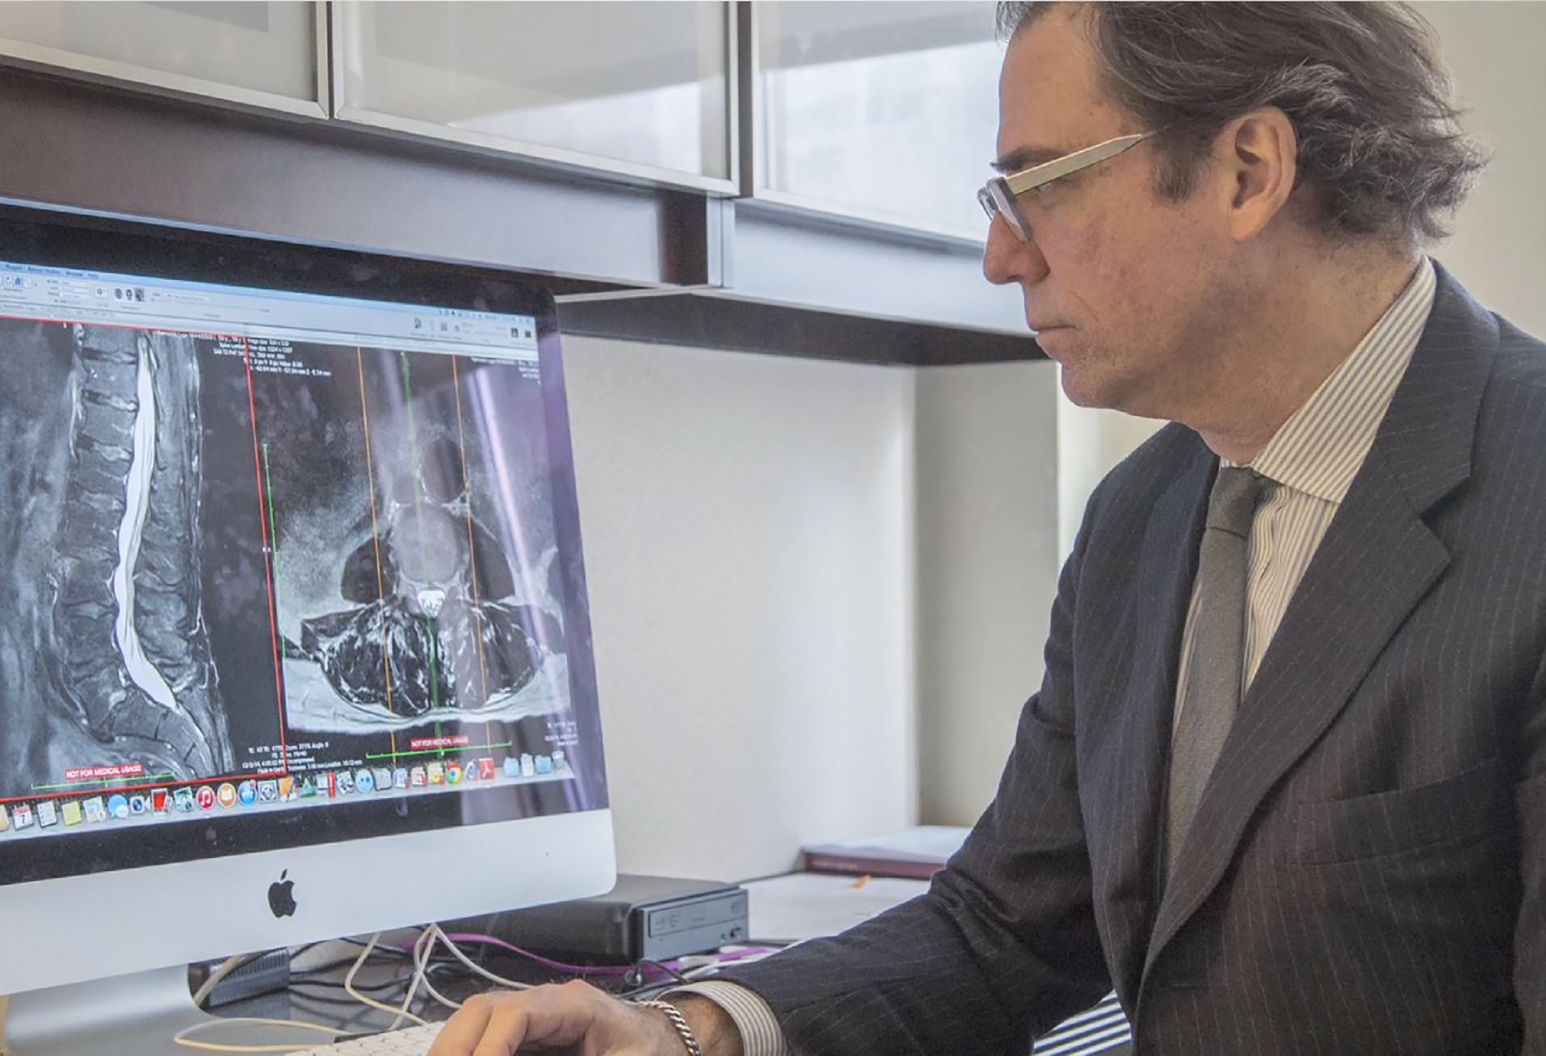 Man wearing a suit is sitting at his desk looking at spine scans on a computer